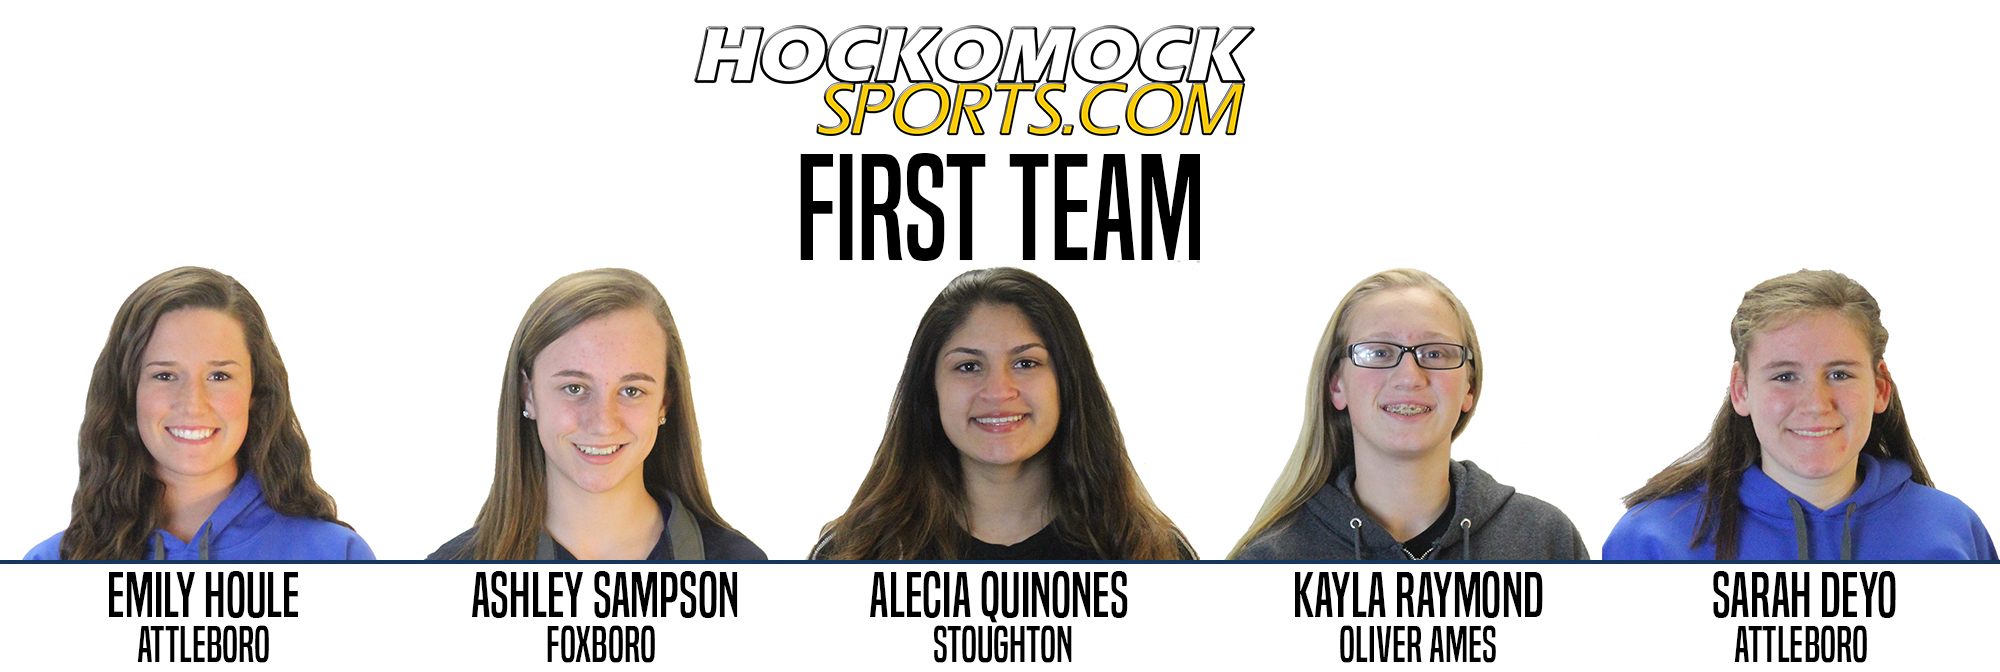 Girls Basketball 1st Team - Hockomock Sports photo